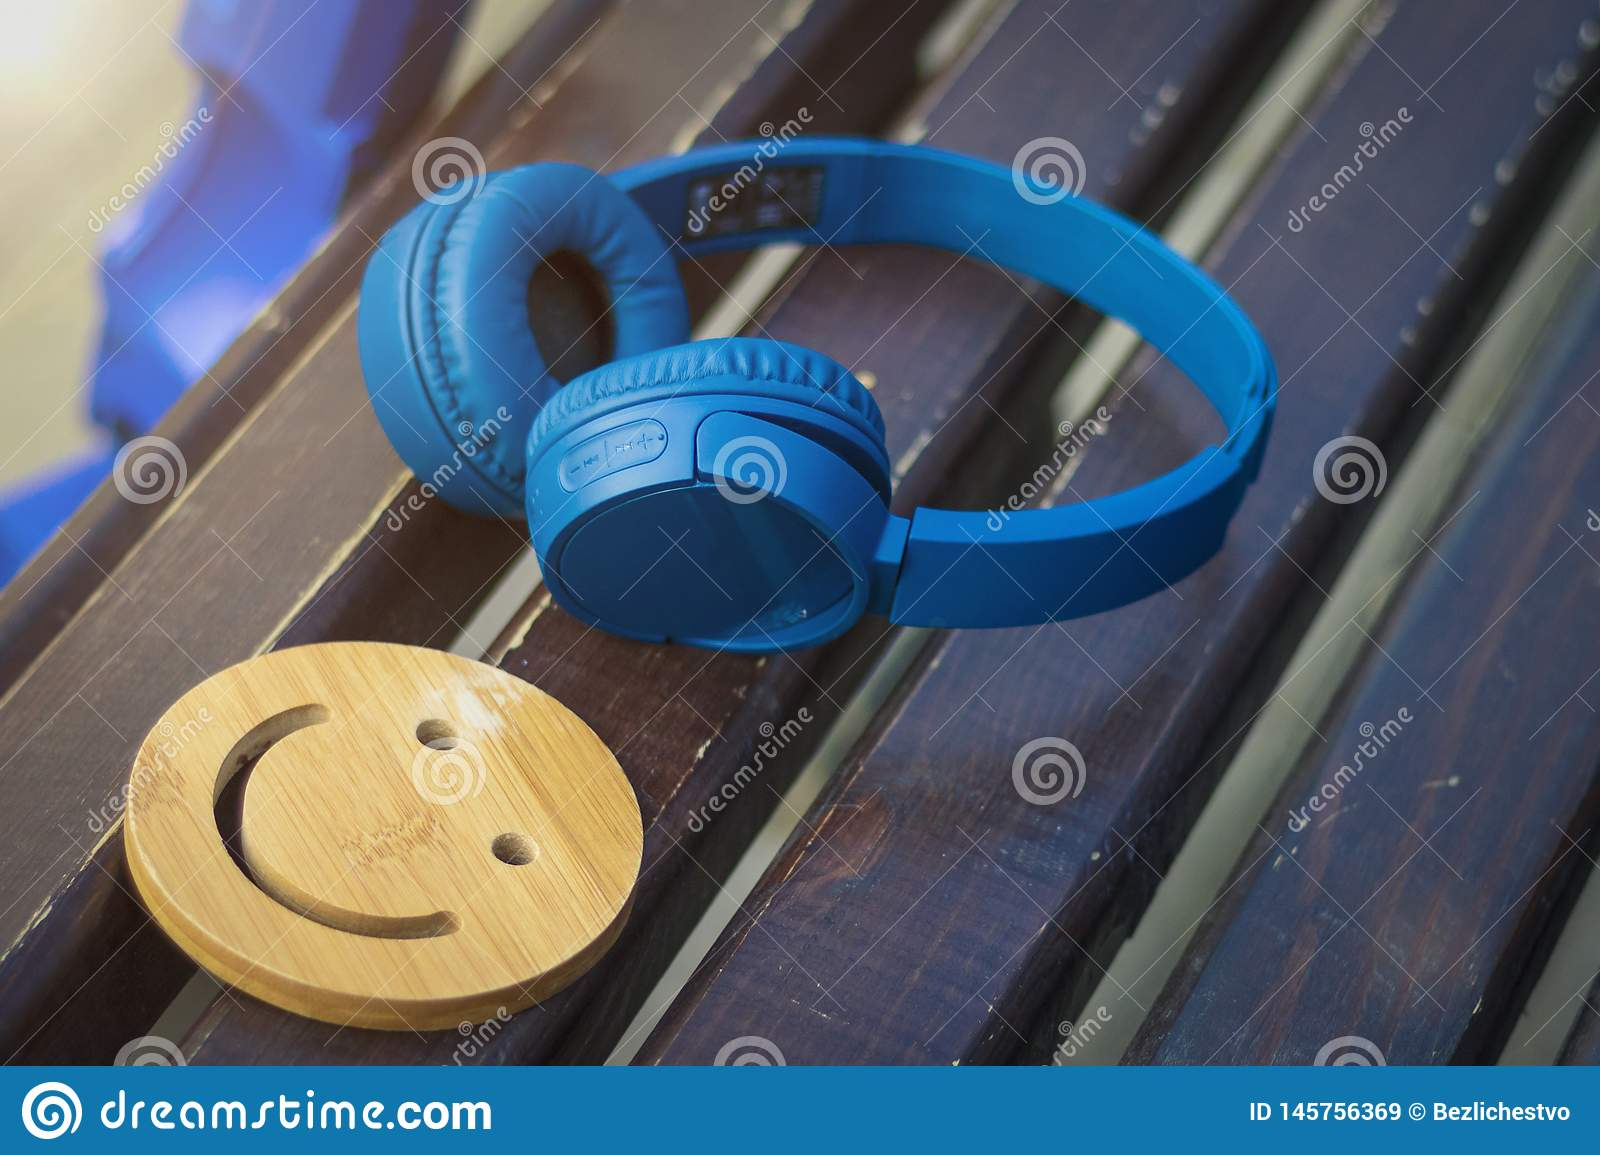 Fine music for perfect mood. Wireless headphones of blue color lie on a dark wooden bench. A smile. The concept of love for music